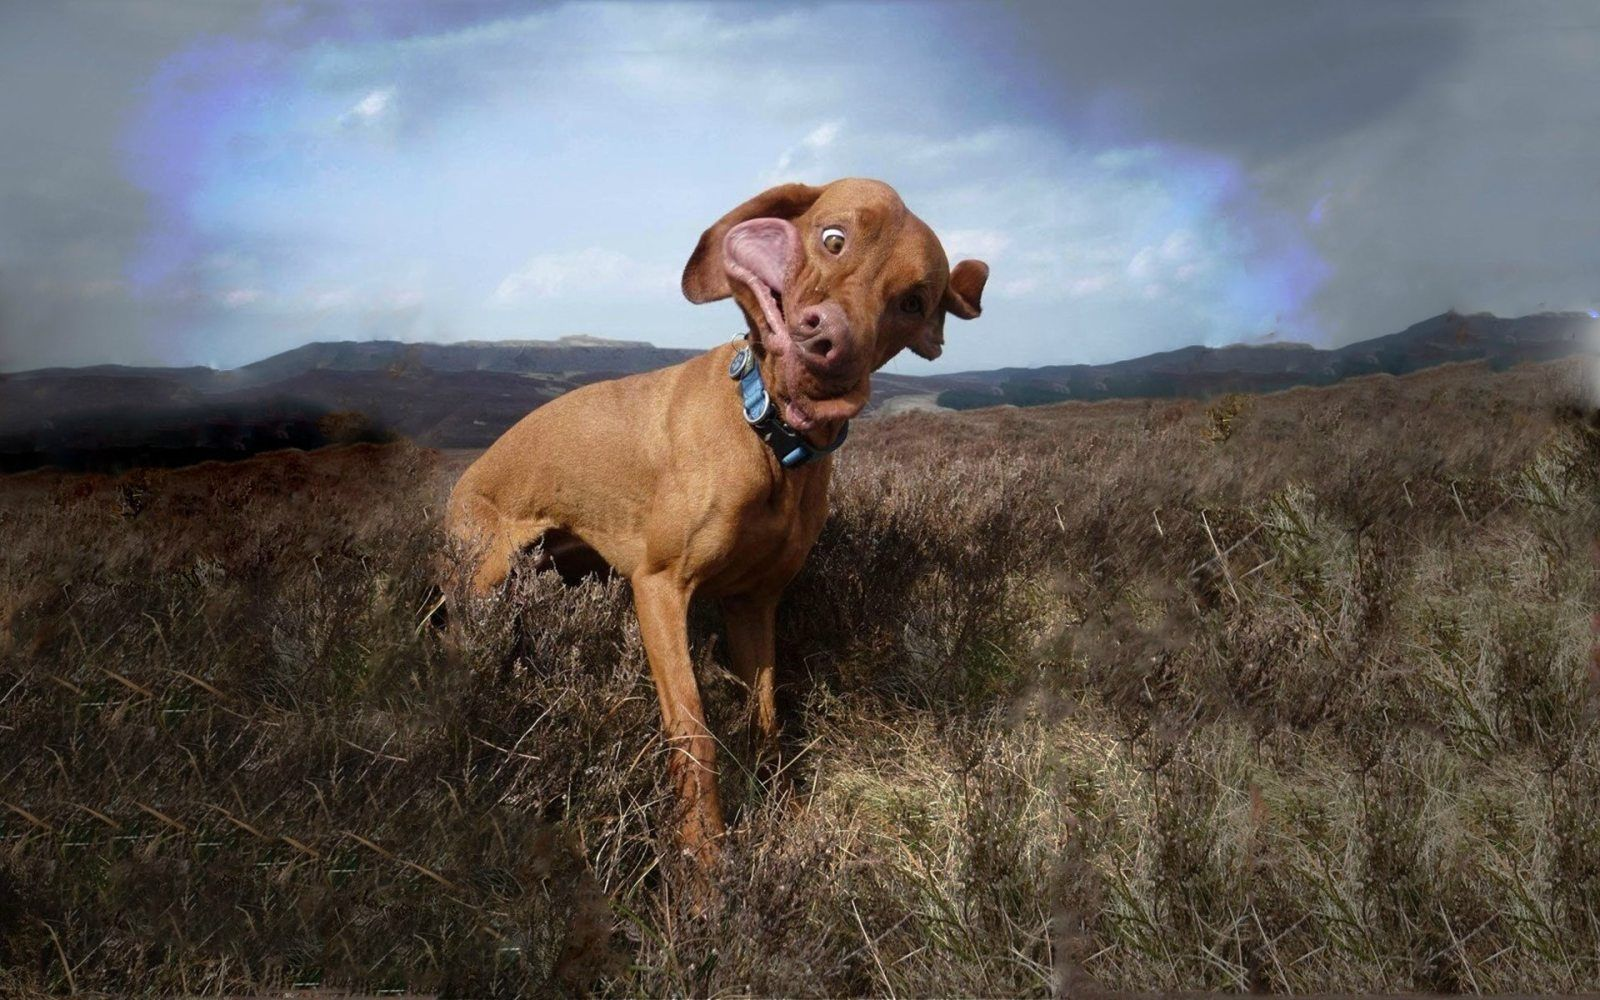 Awesome Photos Daily Awesome Videos Awesome Gifs Funny Dog Pictures Dog Background Cool Pets